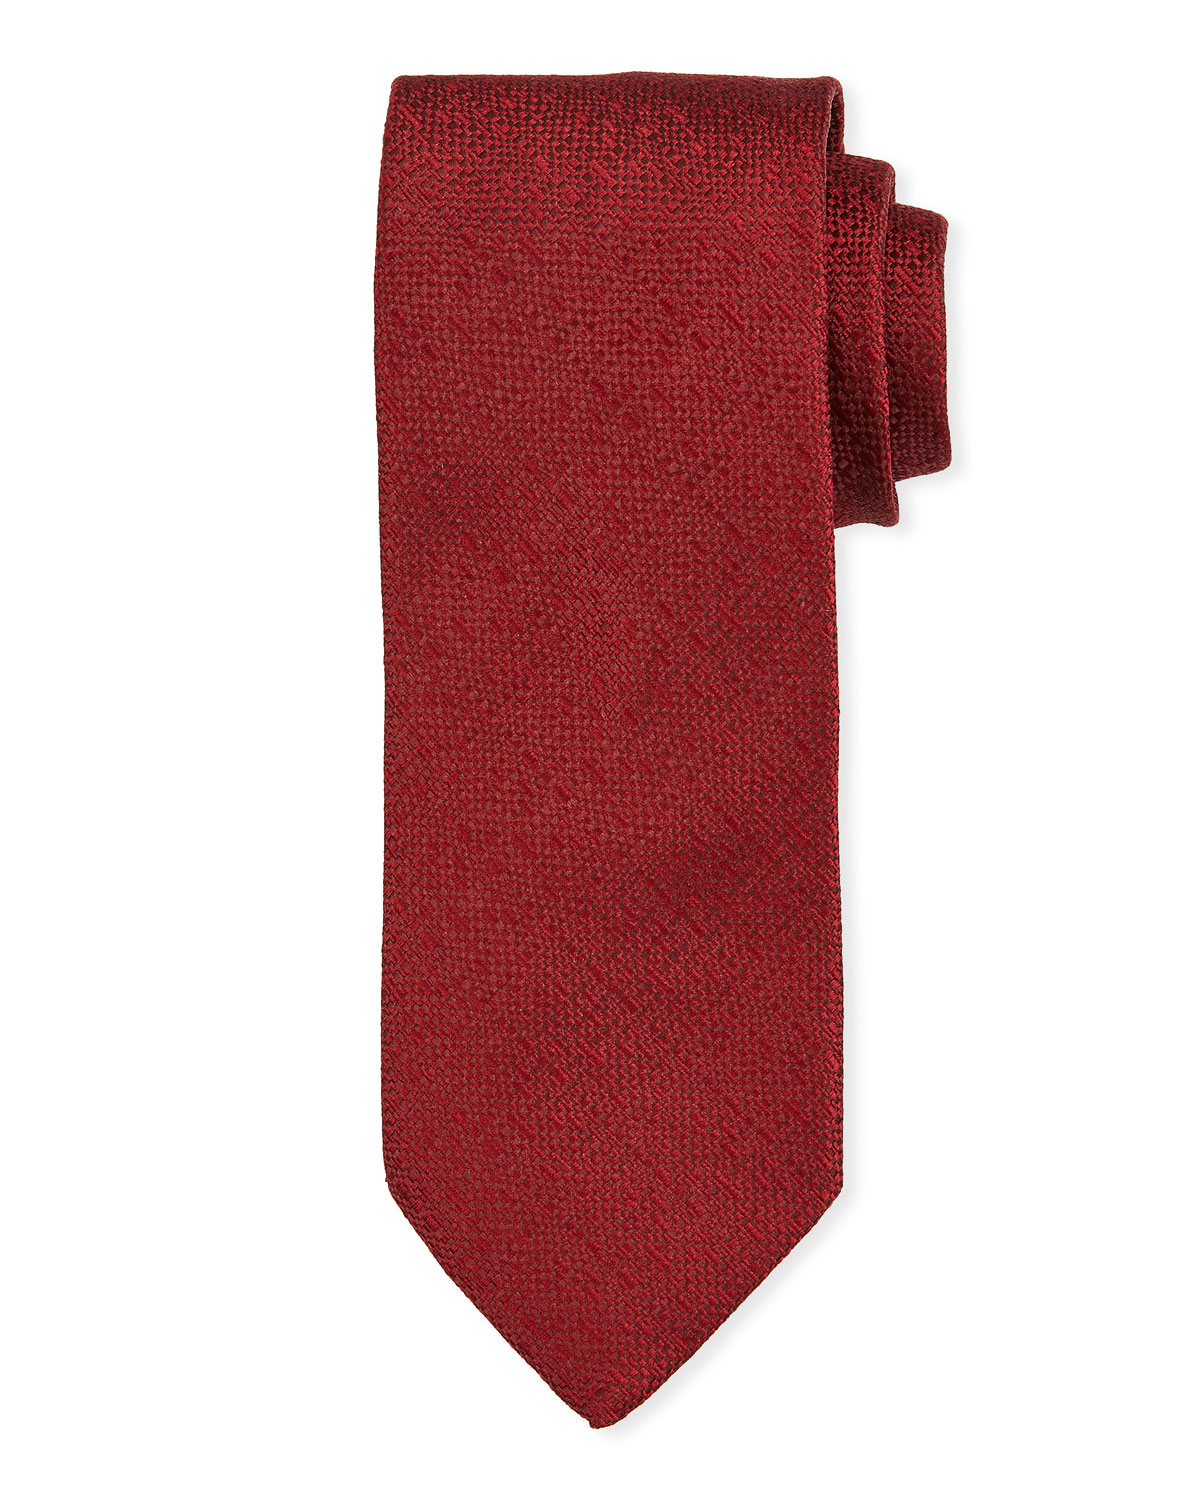 Bigi Ties SOLID SILK TIE, RED